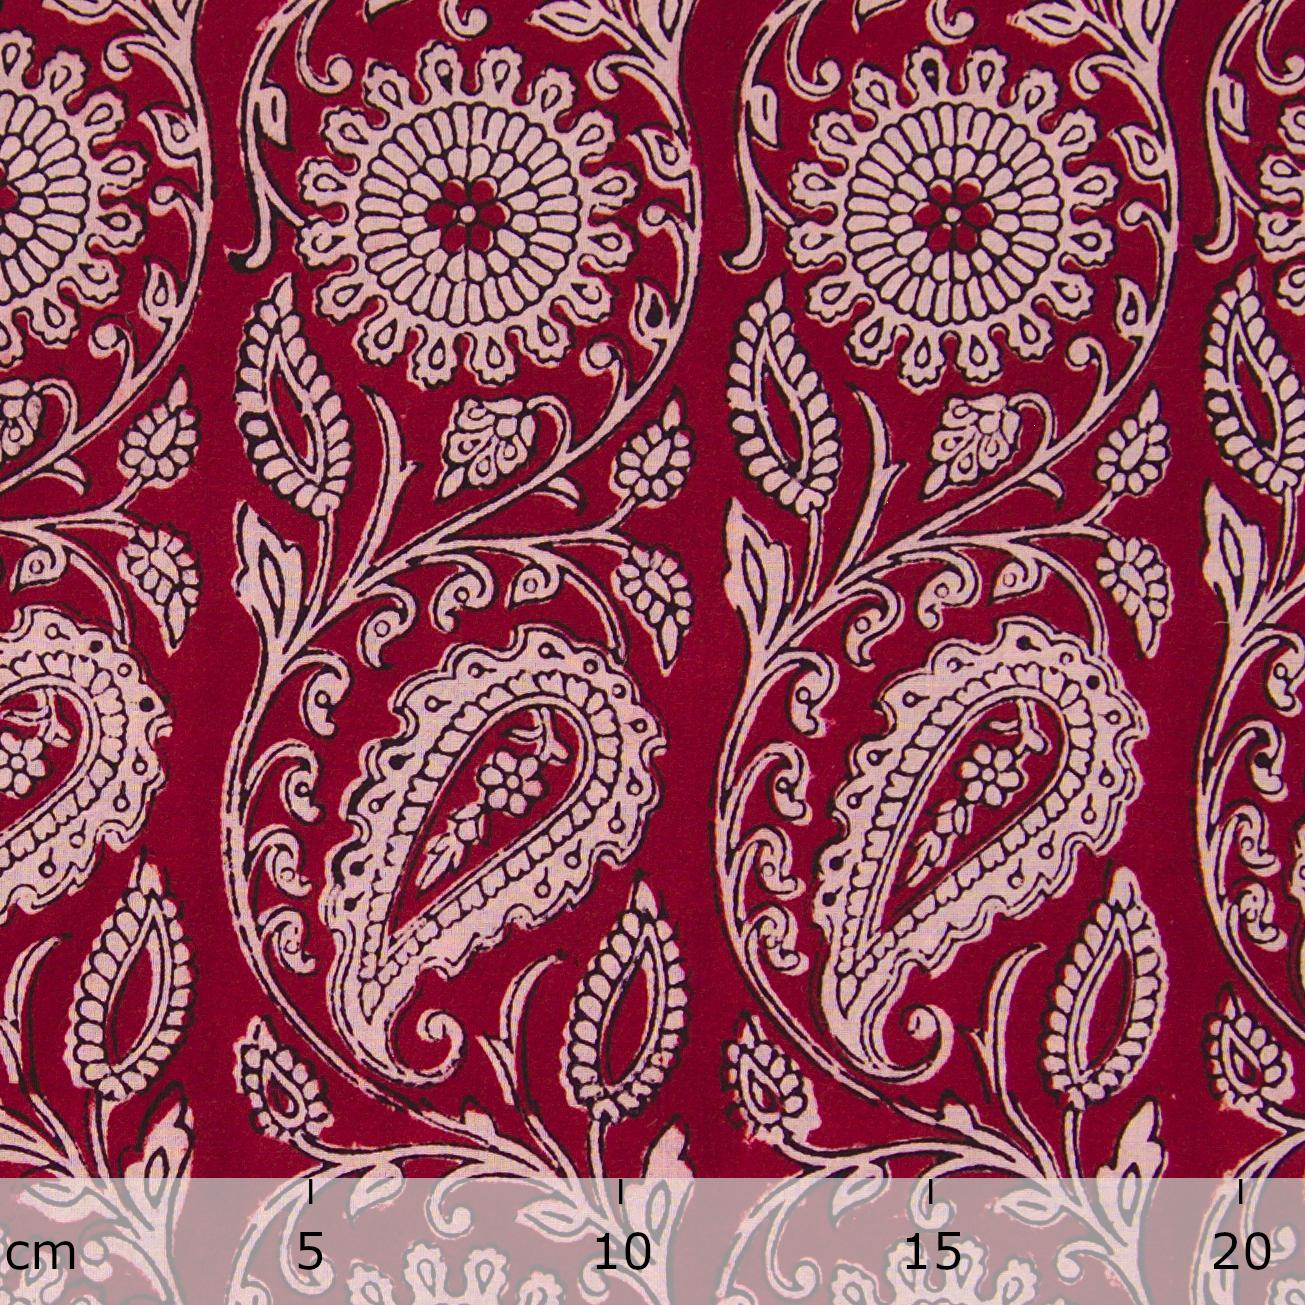 100% Block-Printed Cotton Fabric From India - Sichuan Pepper Design - Iron Rust Black & Alizarin Red Dyes - Ruler - Live